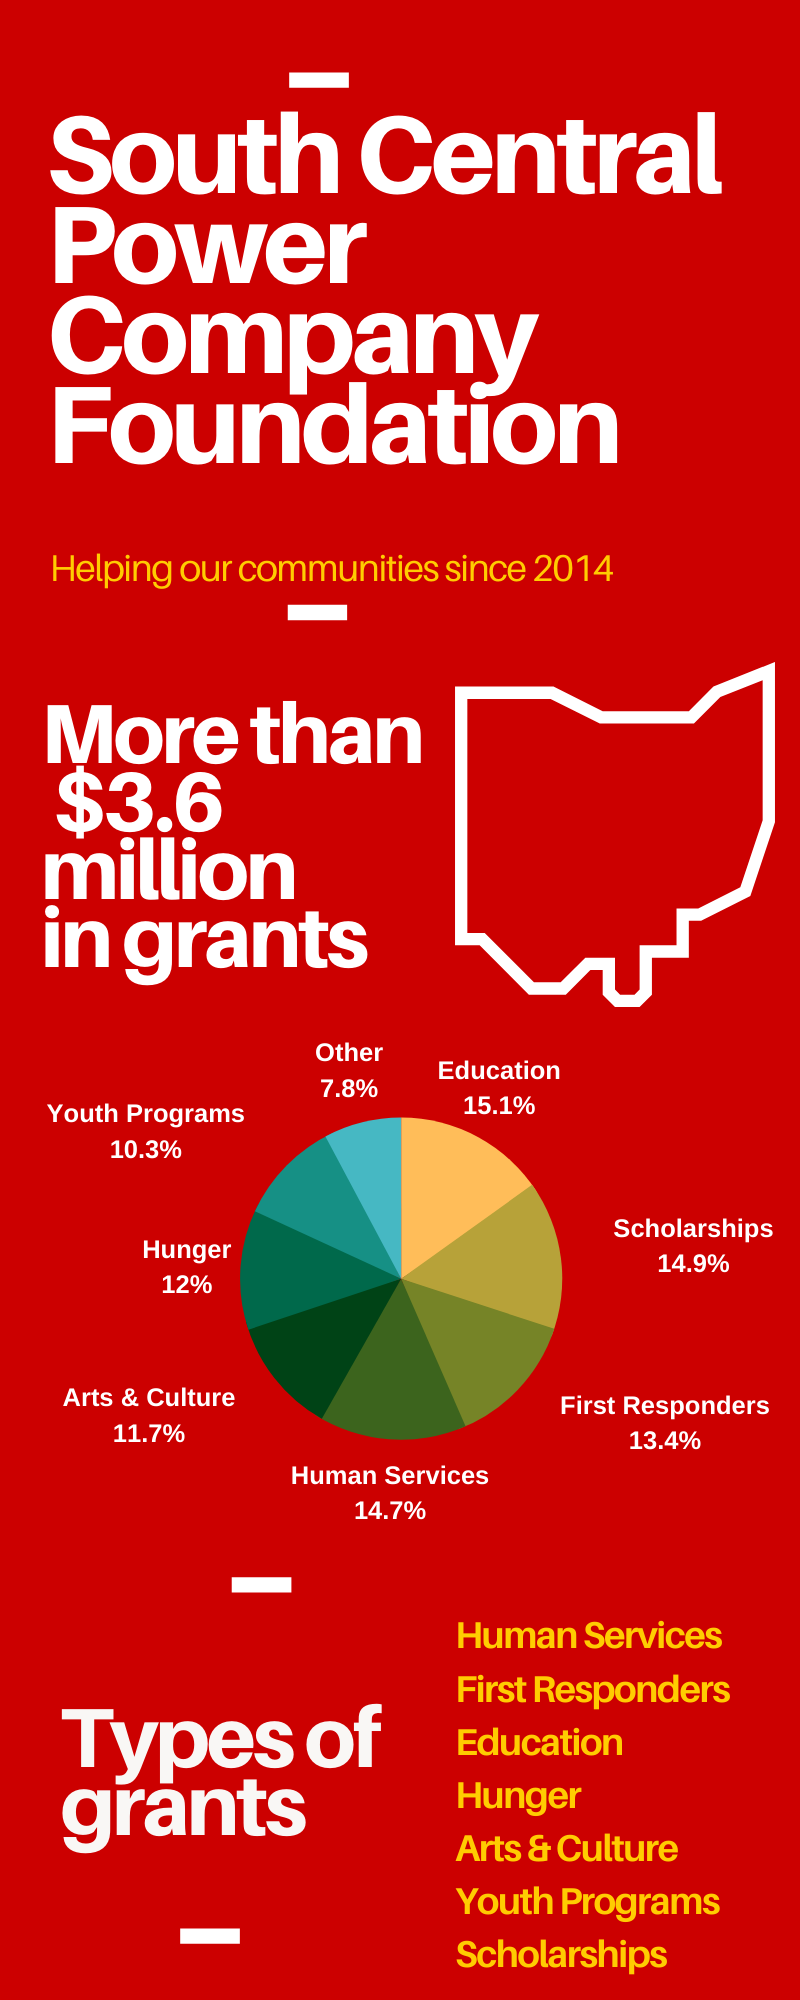 South Central Power Company Foundation Infographic: Helping our communities since 2014. More than $3.6 million in grants. Pie chart: Education 15.1%, Scholarships 14.9%, First Responders 13.4%, Human Services 14.7%, Arts & Culture 11.7%, Hunger 12%, Youth Programs 10.3%, Other 7.8%. Types of grants: human services, first responders, education, hunger, arts & culture, youth programs, scholarships